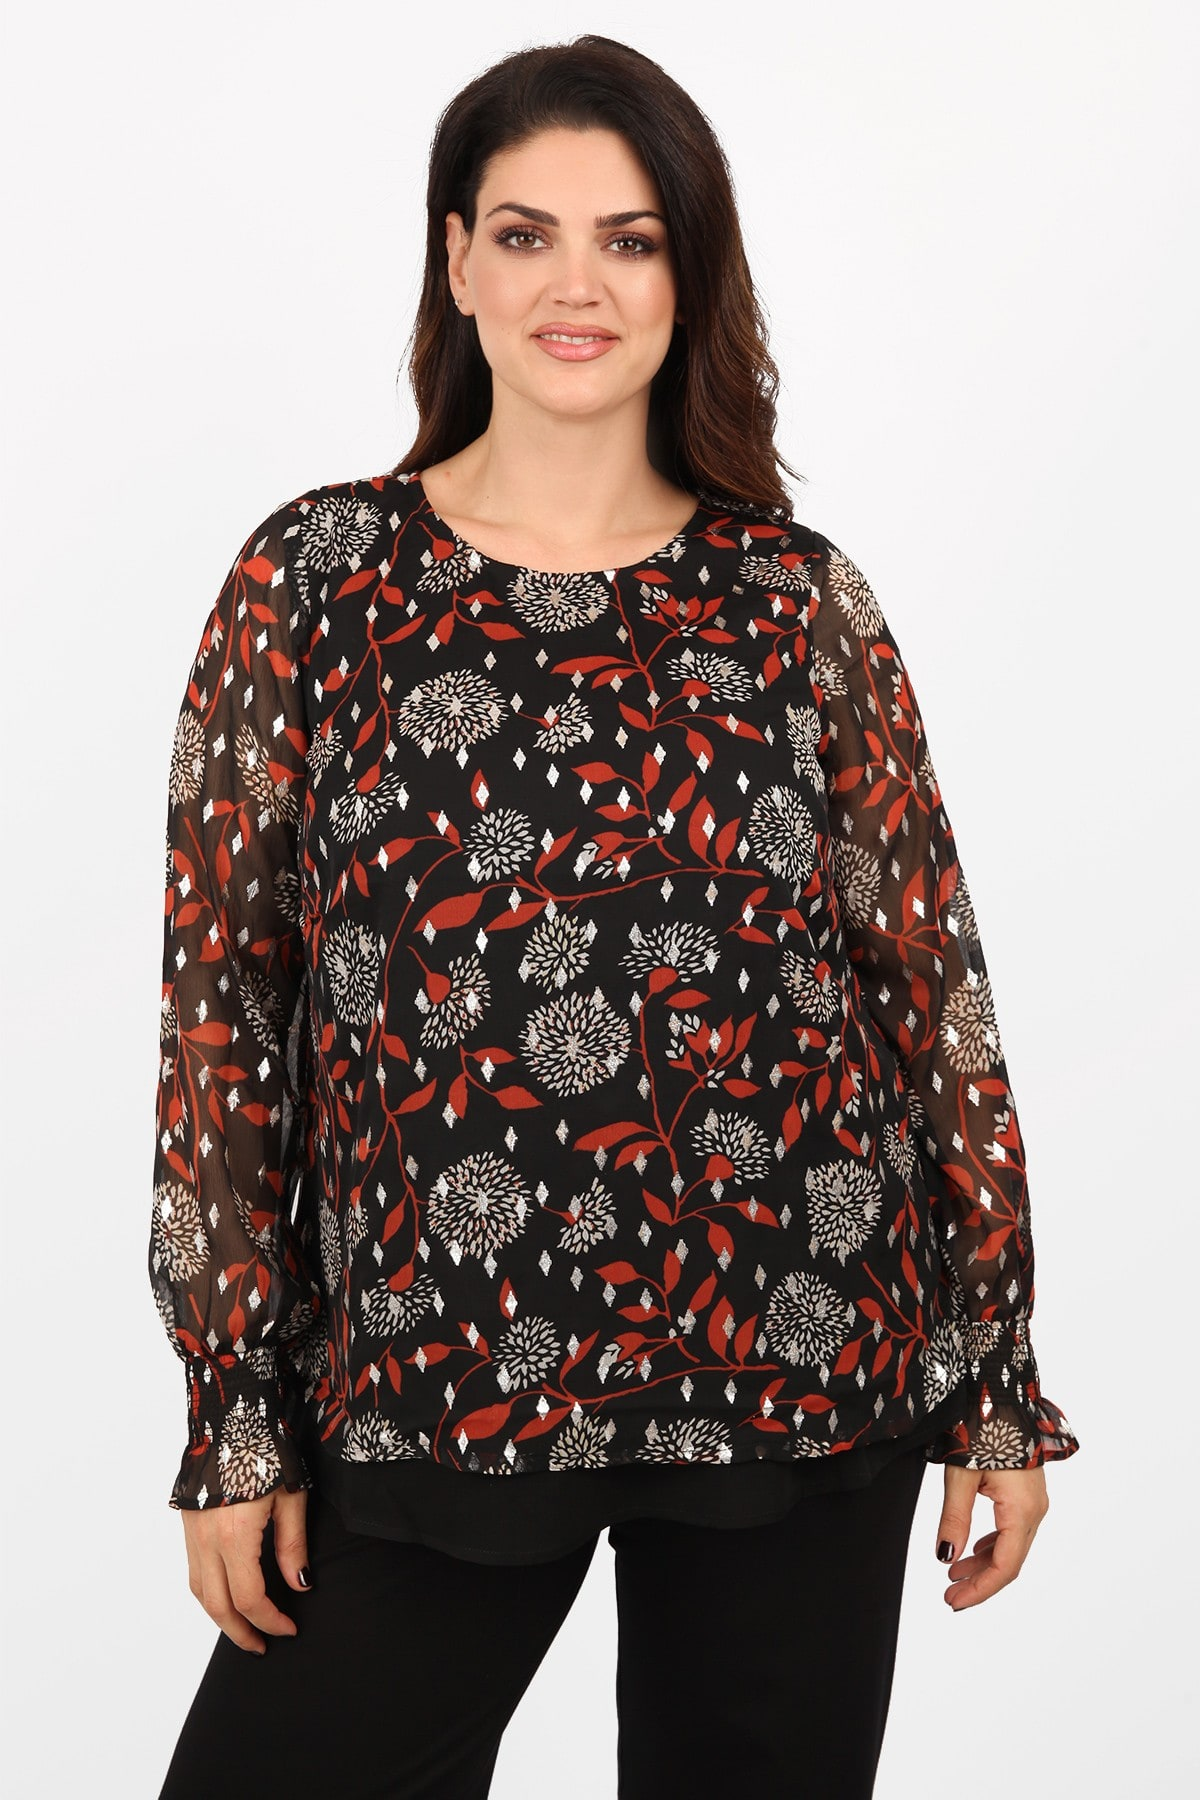 Printed blouse from crepe chiffon